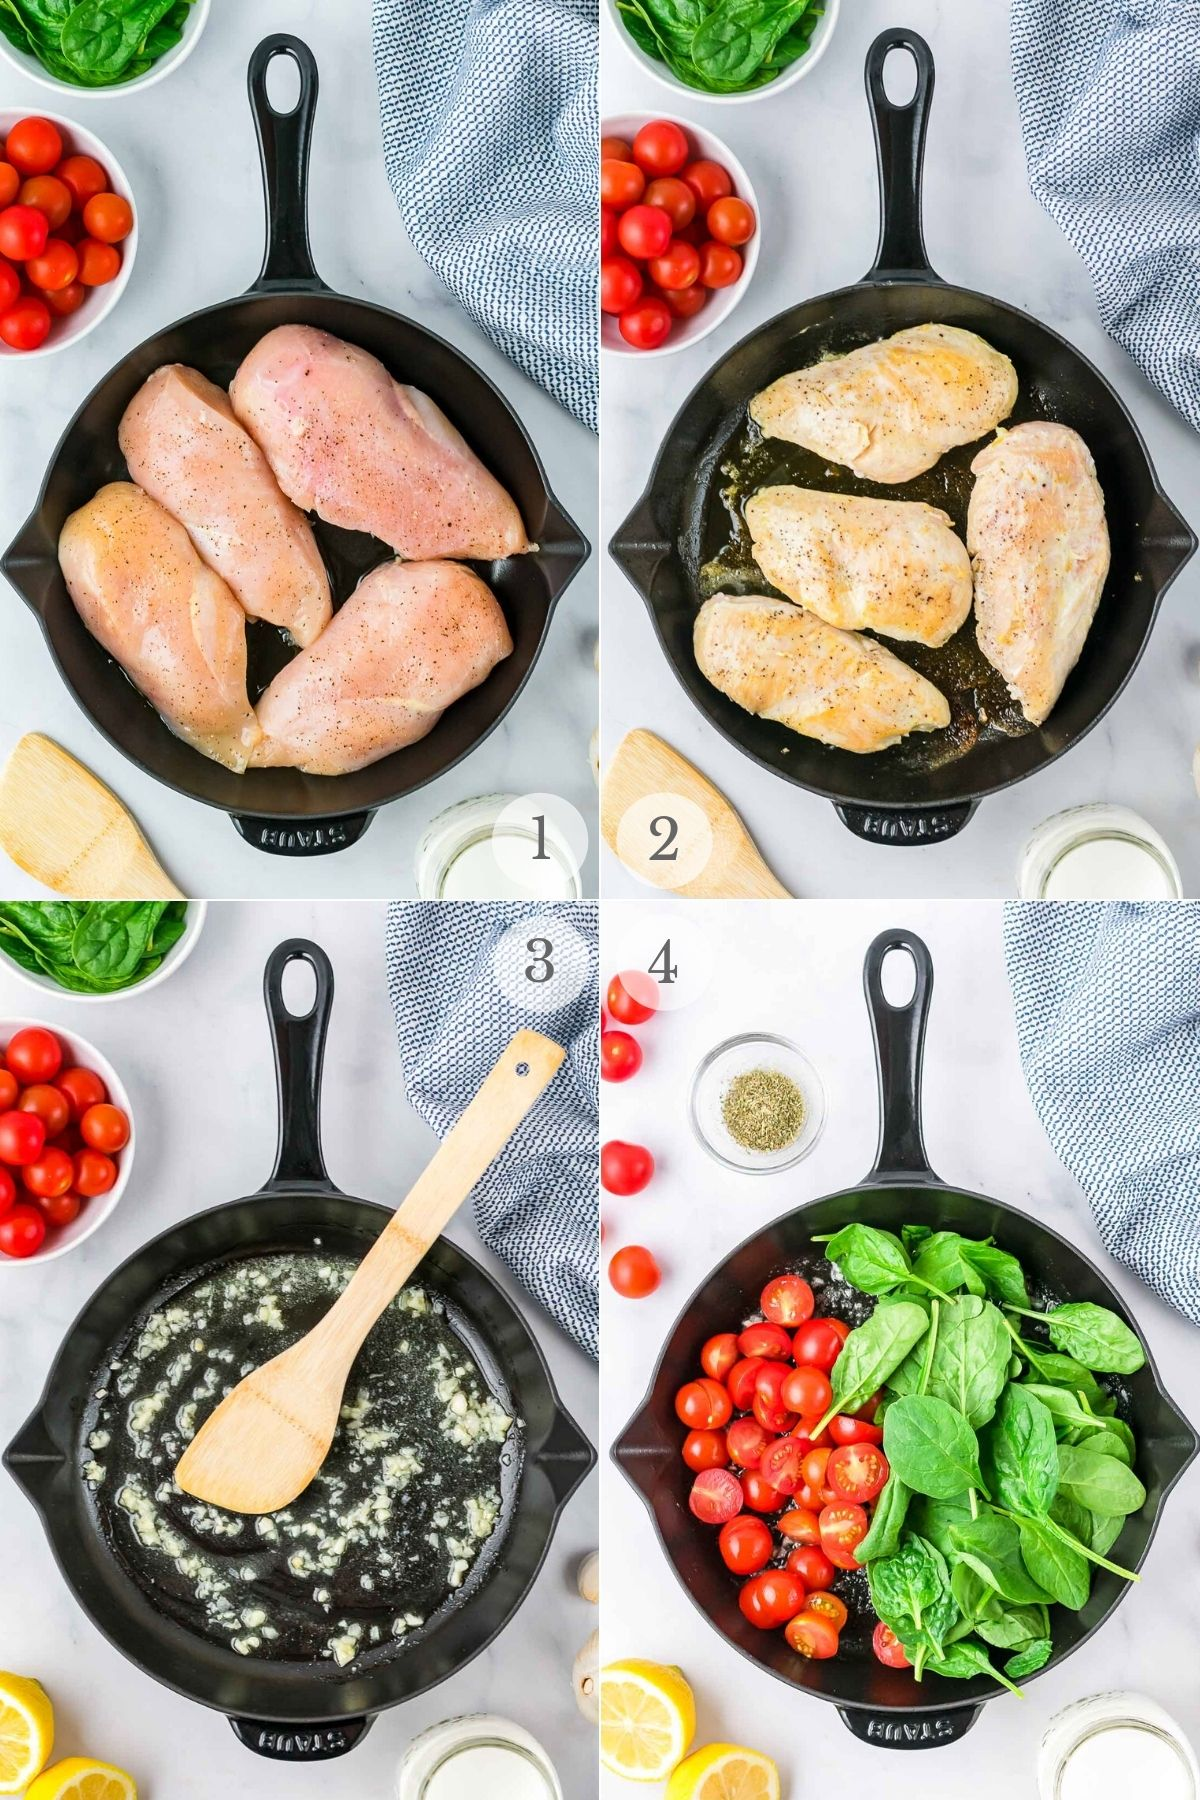 Creamy Tuscan Chicken recipe steps 1-4